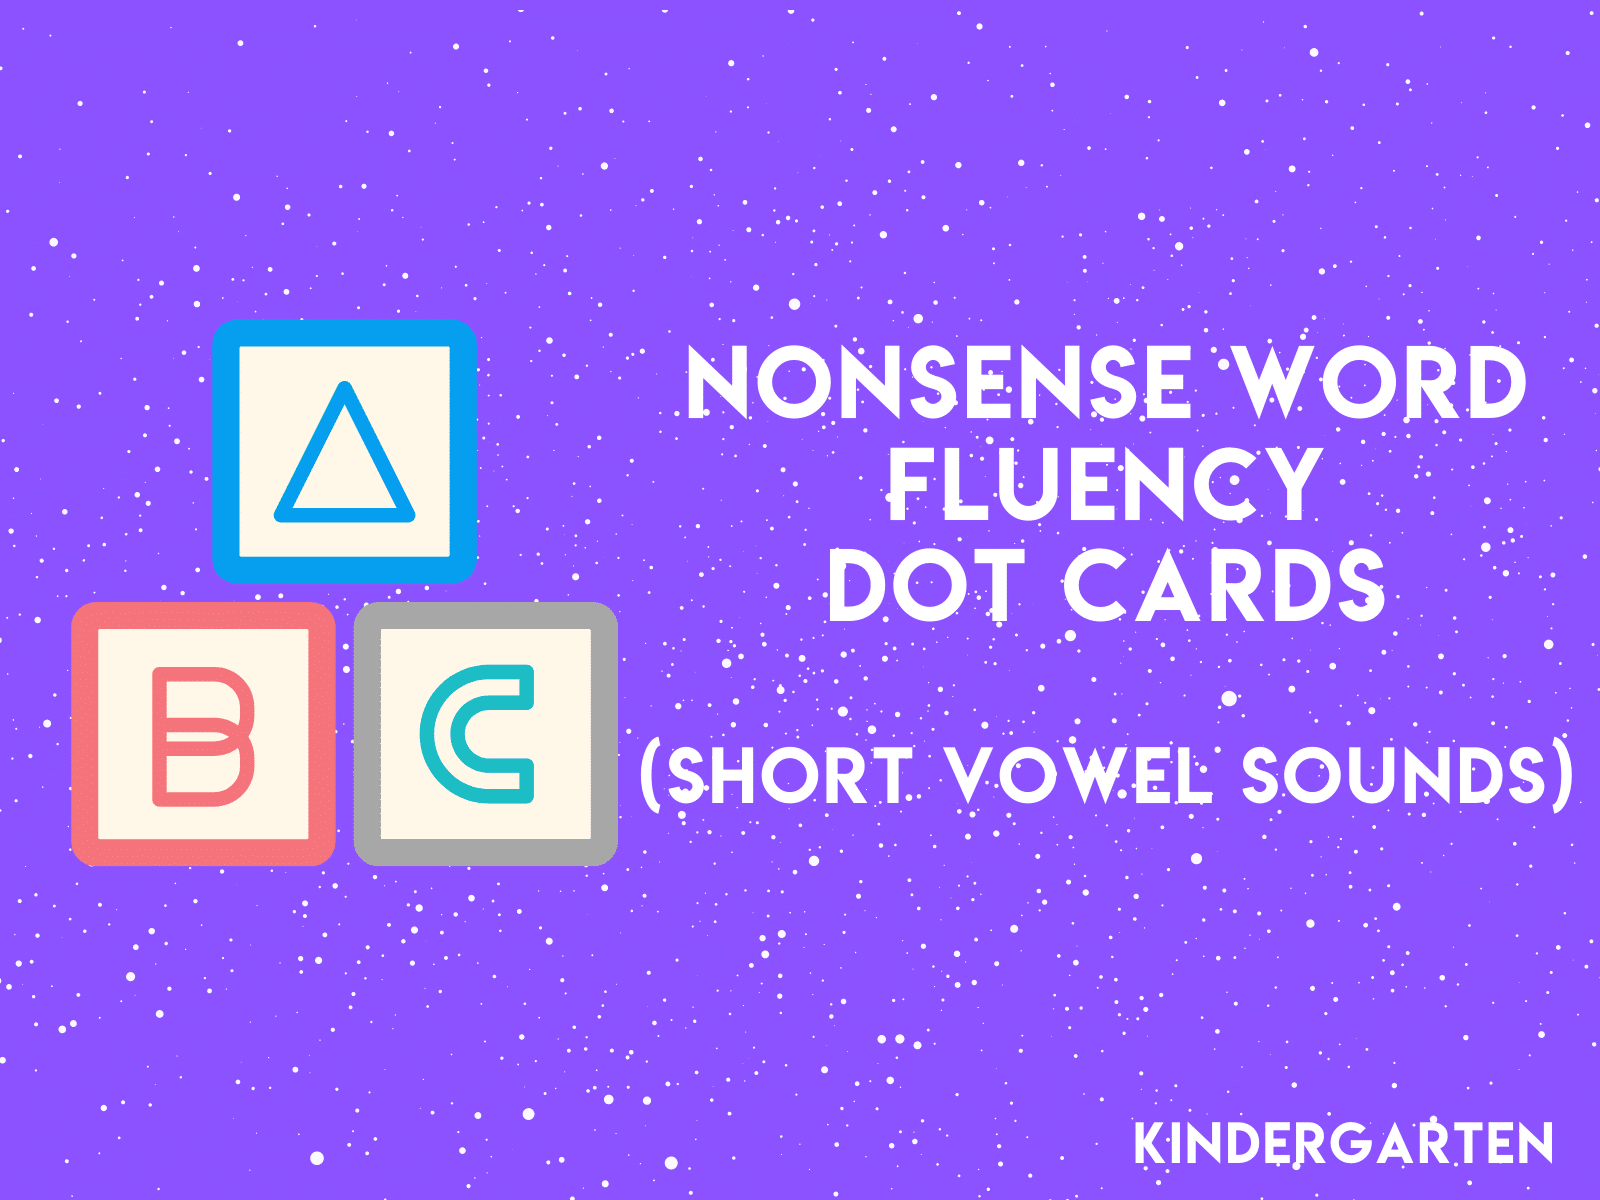 Nonsense Word Dot Cards with short vowel sounds for kindergarten reading